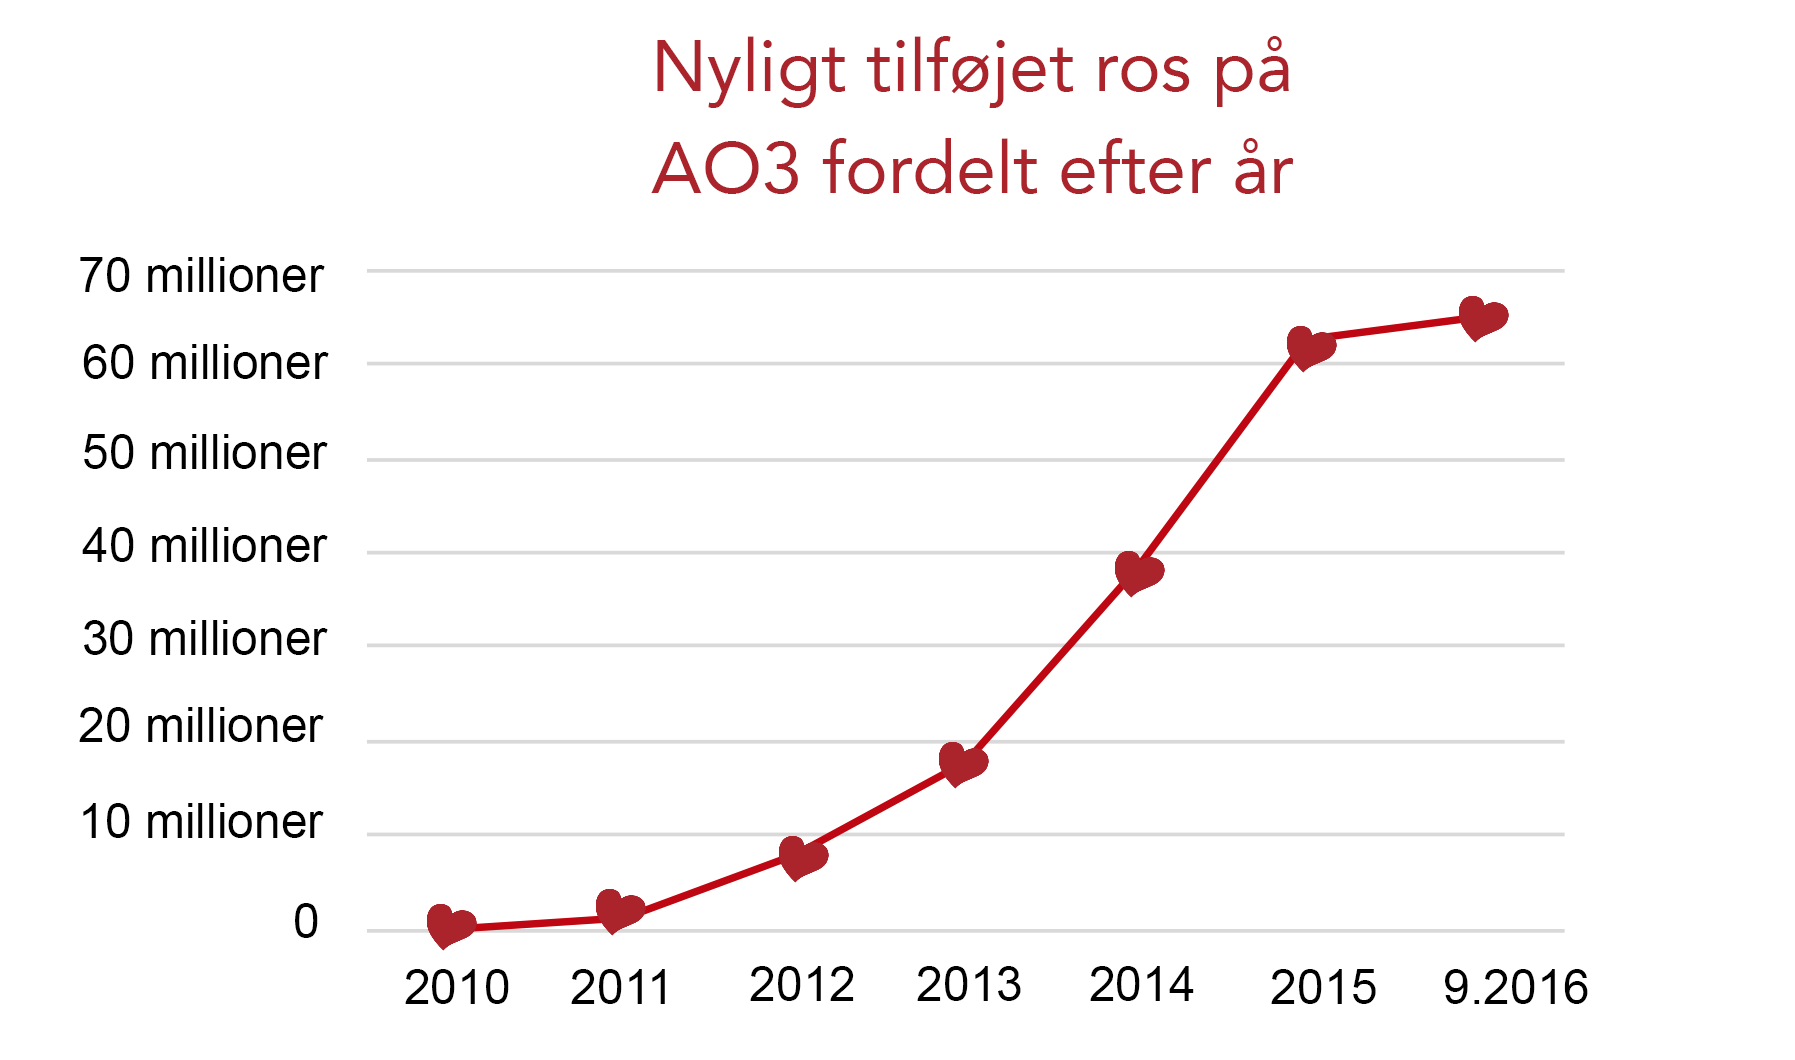 En graf over ros på AO3: fra 0 i 2010 til over 60 millioner per september 2016.